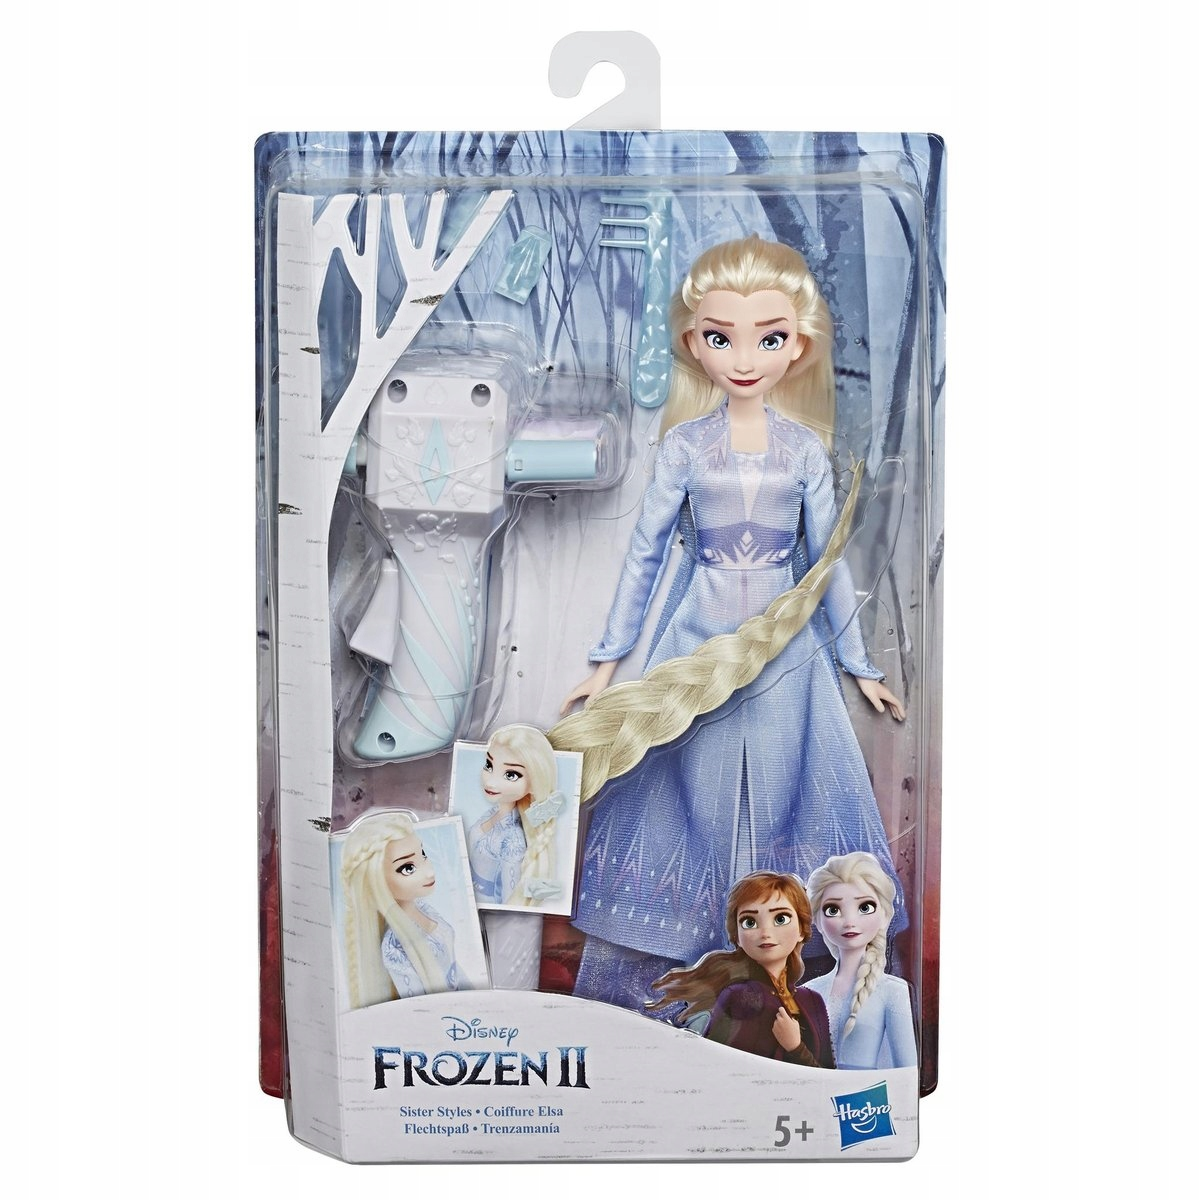 DISNEY LAND OF ICE 2 FROZEN ELSA S KURLEROM NOVINKA